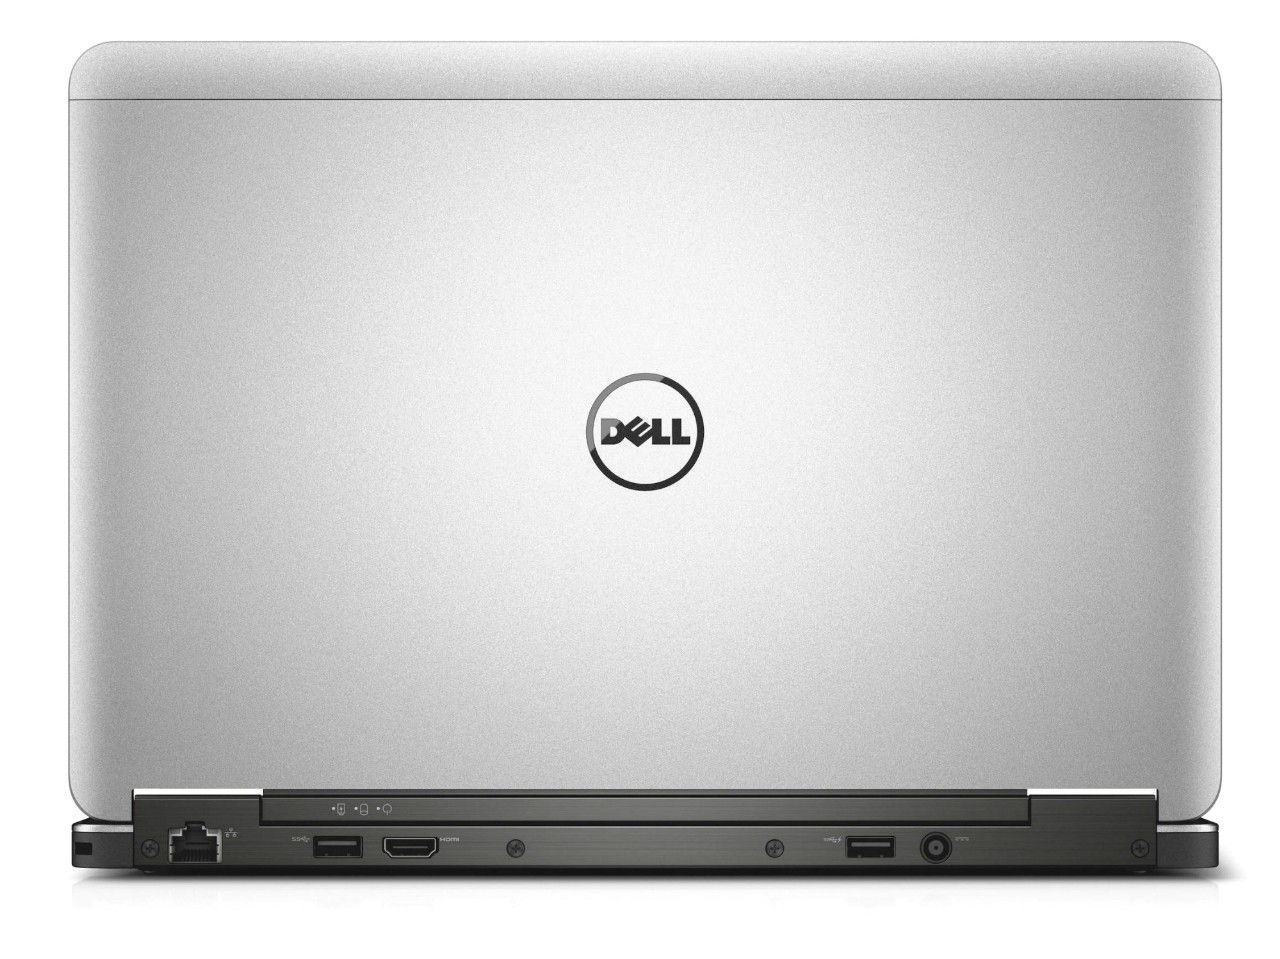 "DELL-LAT-E7240-i5-128GB-Dell Latitude E7240 12.5"" Intel i5 4th Gen i5-4300U 1.9GHz 4GB 128GB SSD Solid State Windows 10 Pro-image"